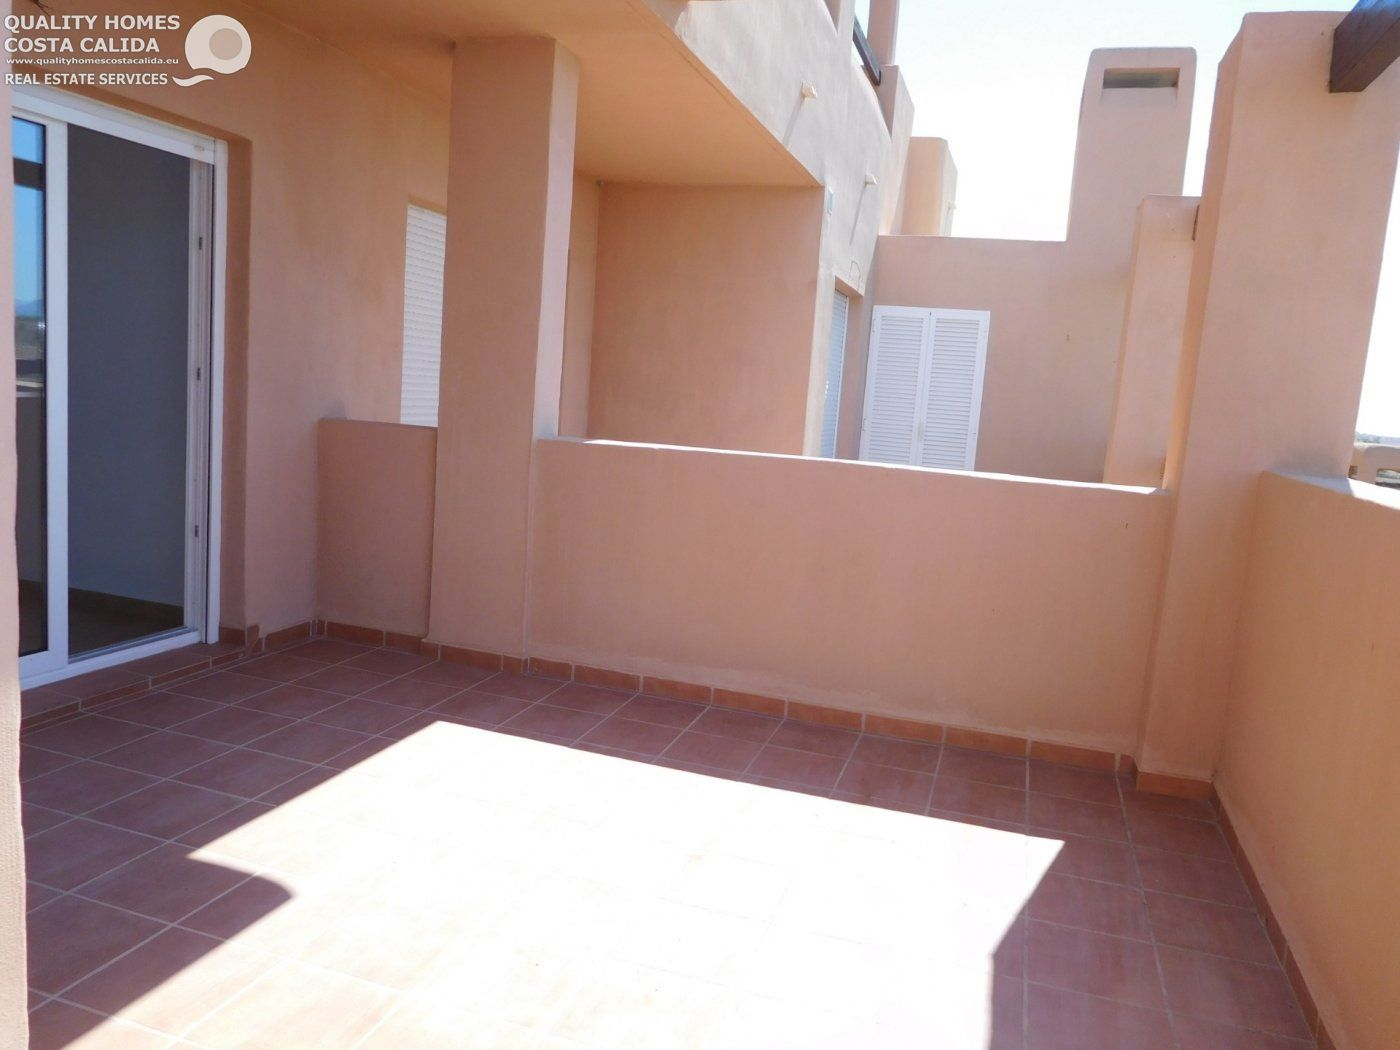 Image 4 Apartment ref 3265-1840 for sale in Condado De Alhama Spain - Quality Homes Costa Cálida